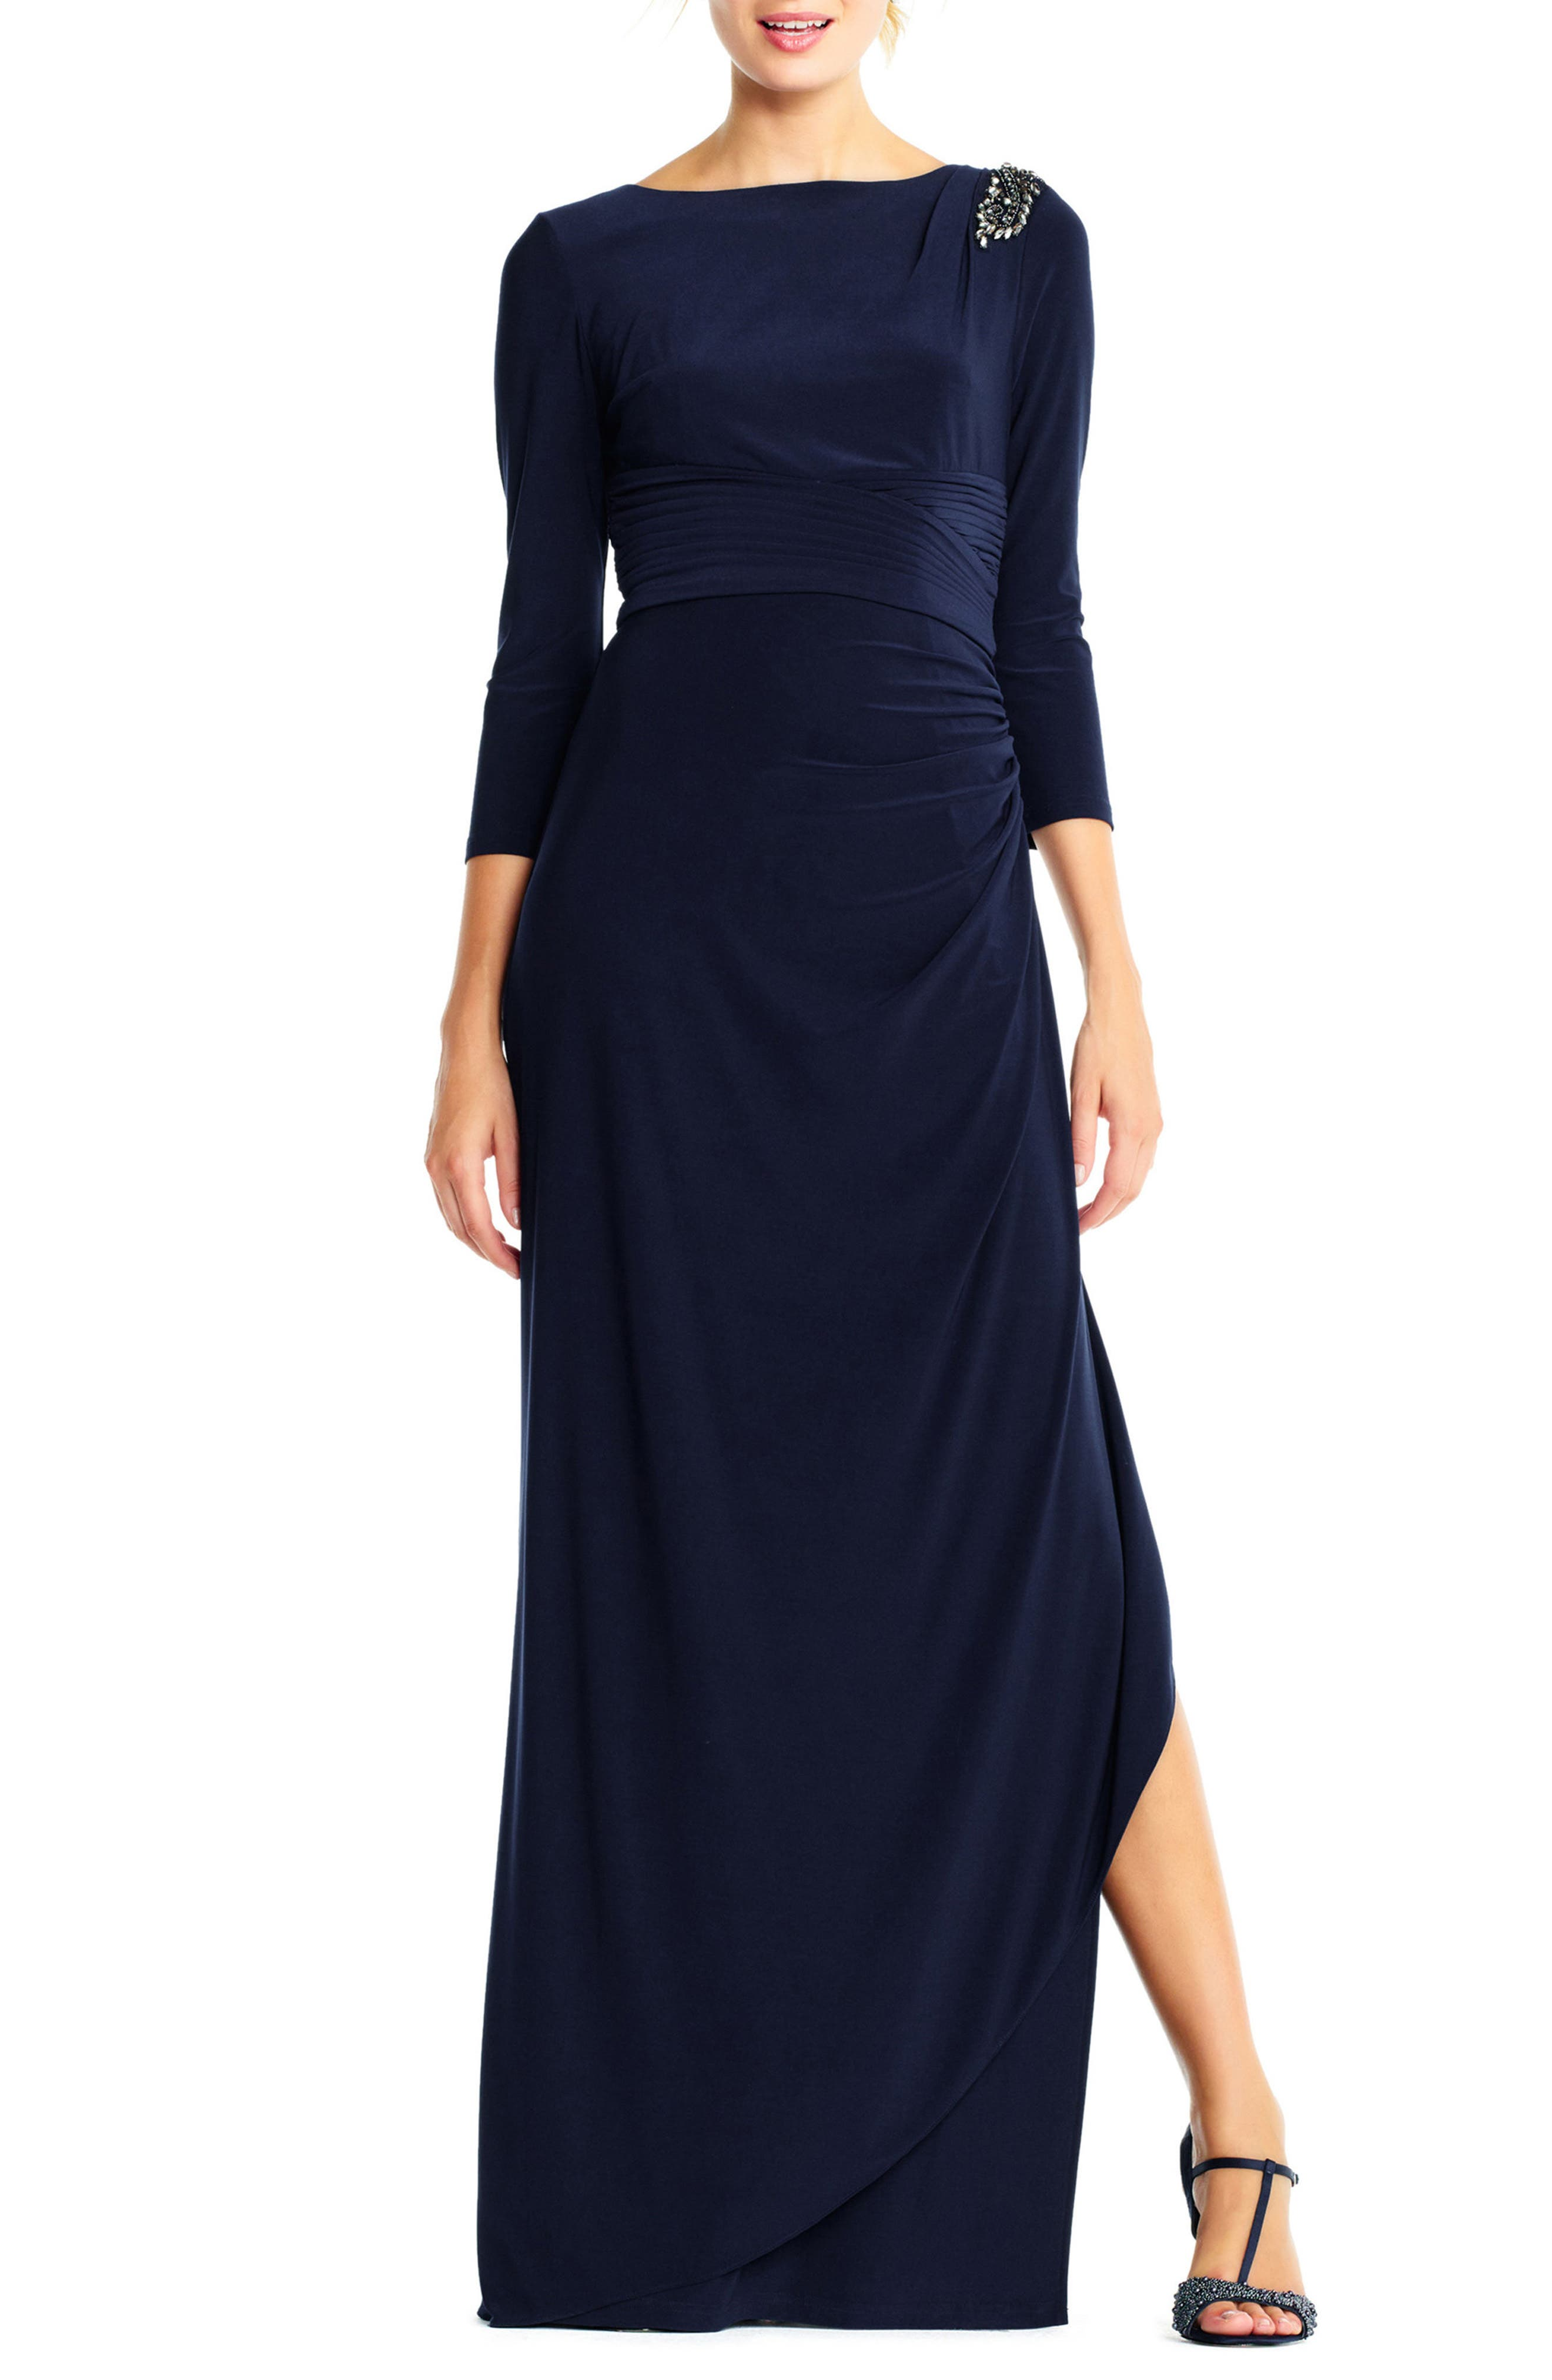 Alternate Image 1 Selected - Adrianna Papell Jewel Shoulder Jersey Gown